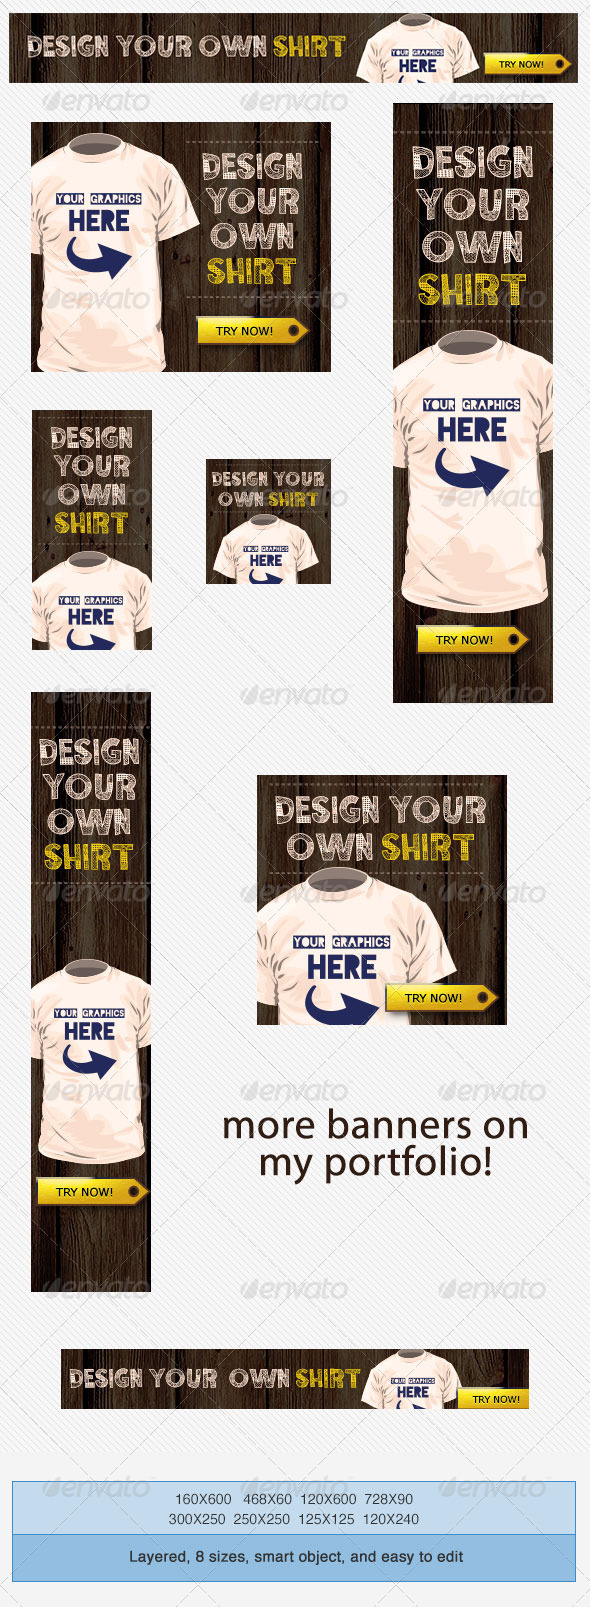 T Shirts Design Banner Ad Template - Banners &amp; Ads Web Elements